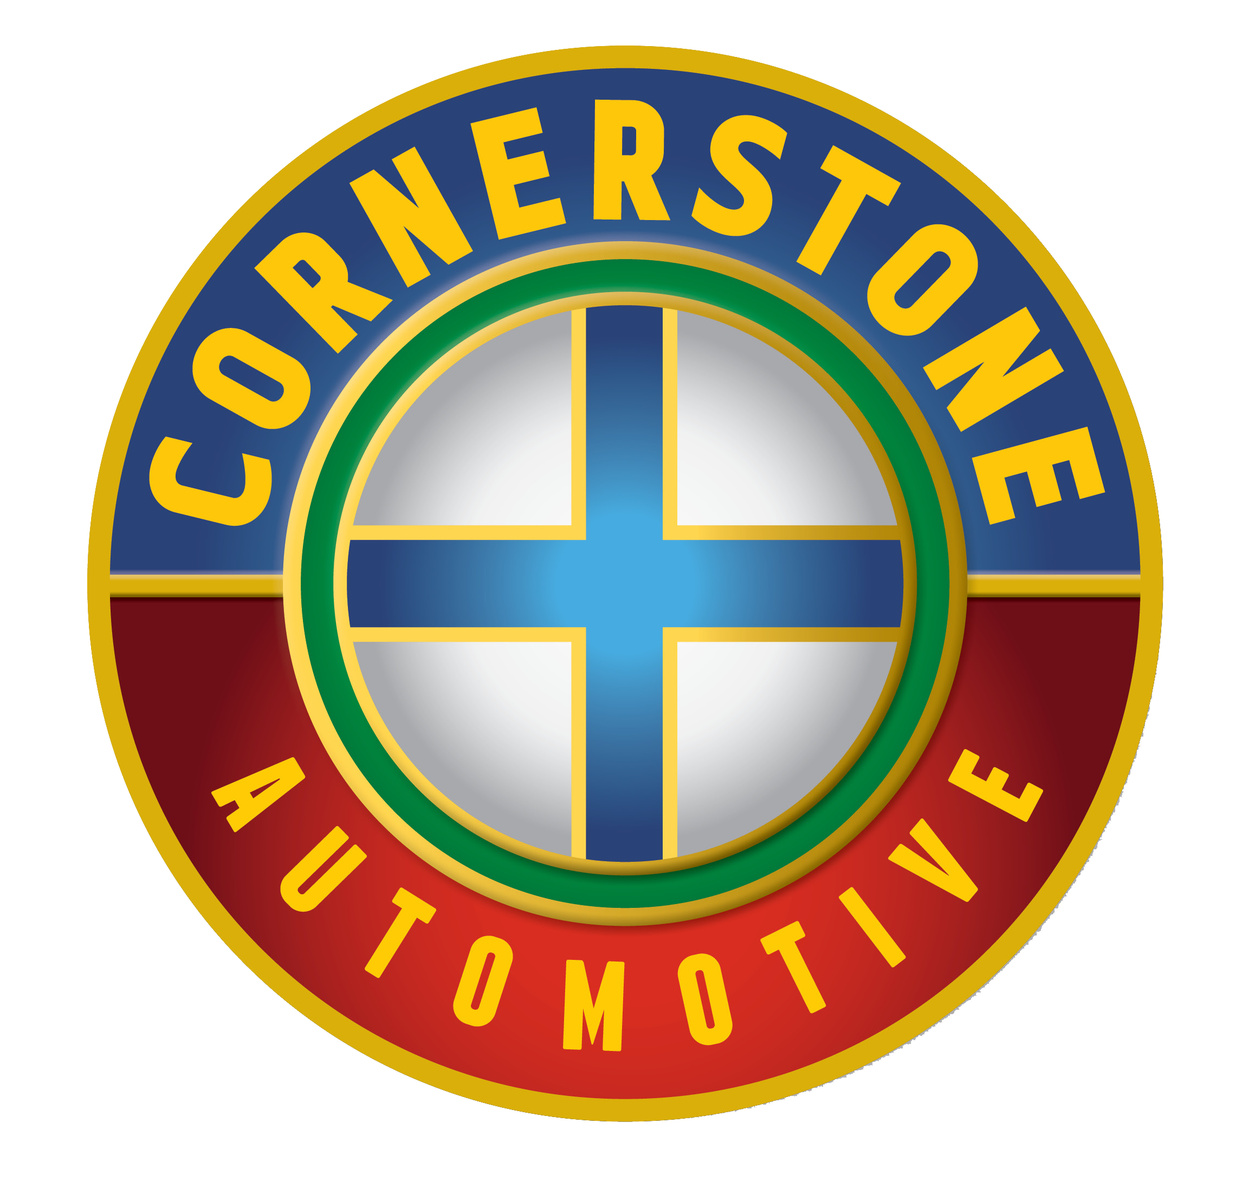 Cornerstone Ford - Elk River, MN: Read Consumer reviews ...